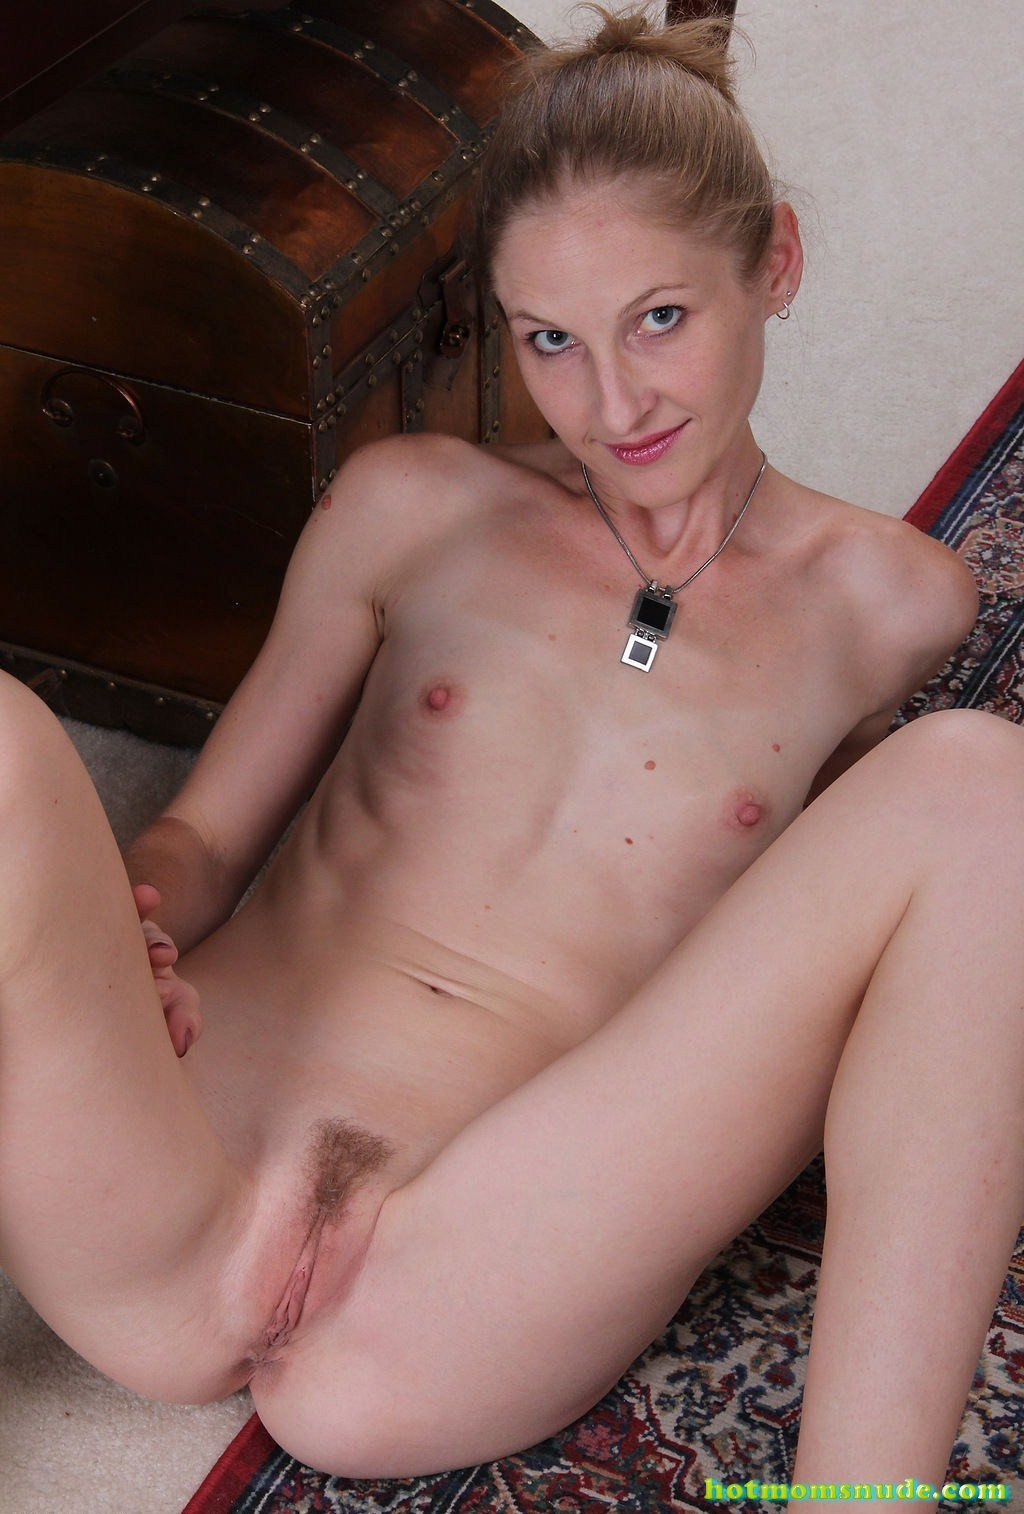 Skinny Beyla Nude Pics And Biography - Hot Moms Nude-3203